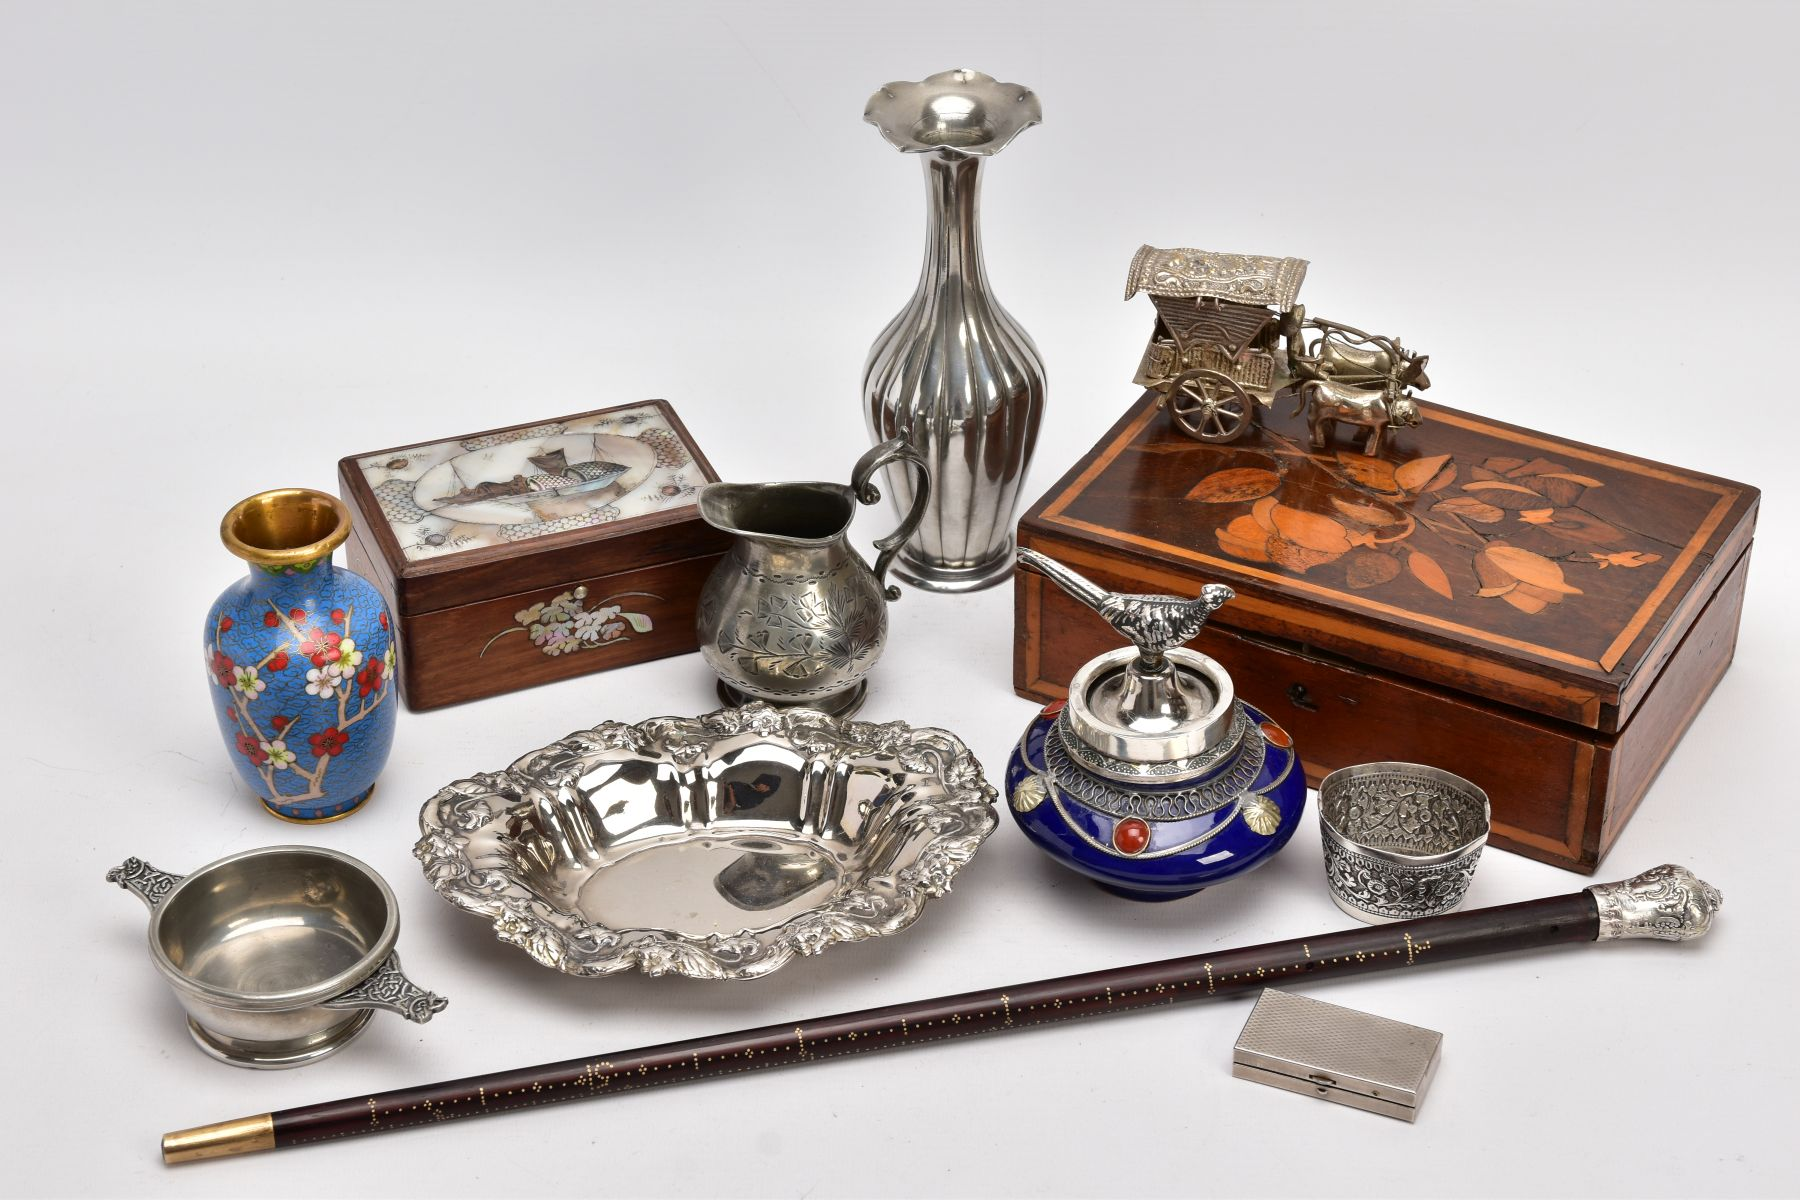 A BOX OF SILVER PLATE, COLLECTABLES AND OTHER METALWARES, including a small Indian white metal